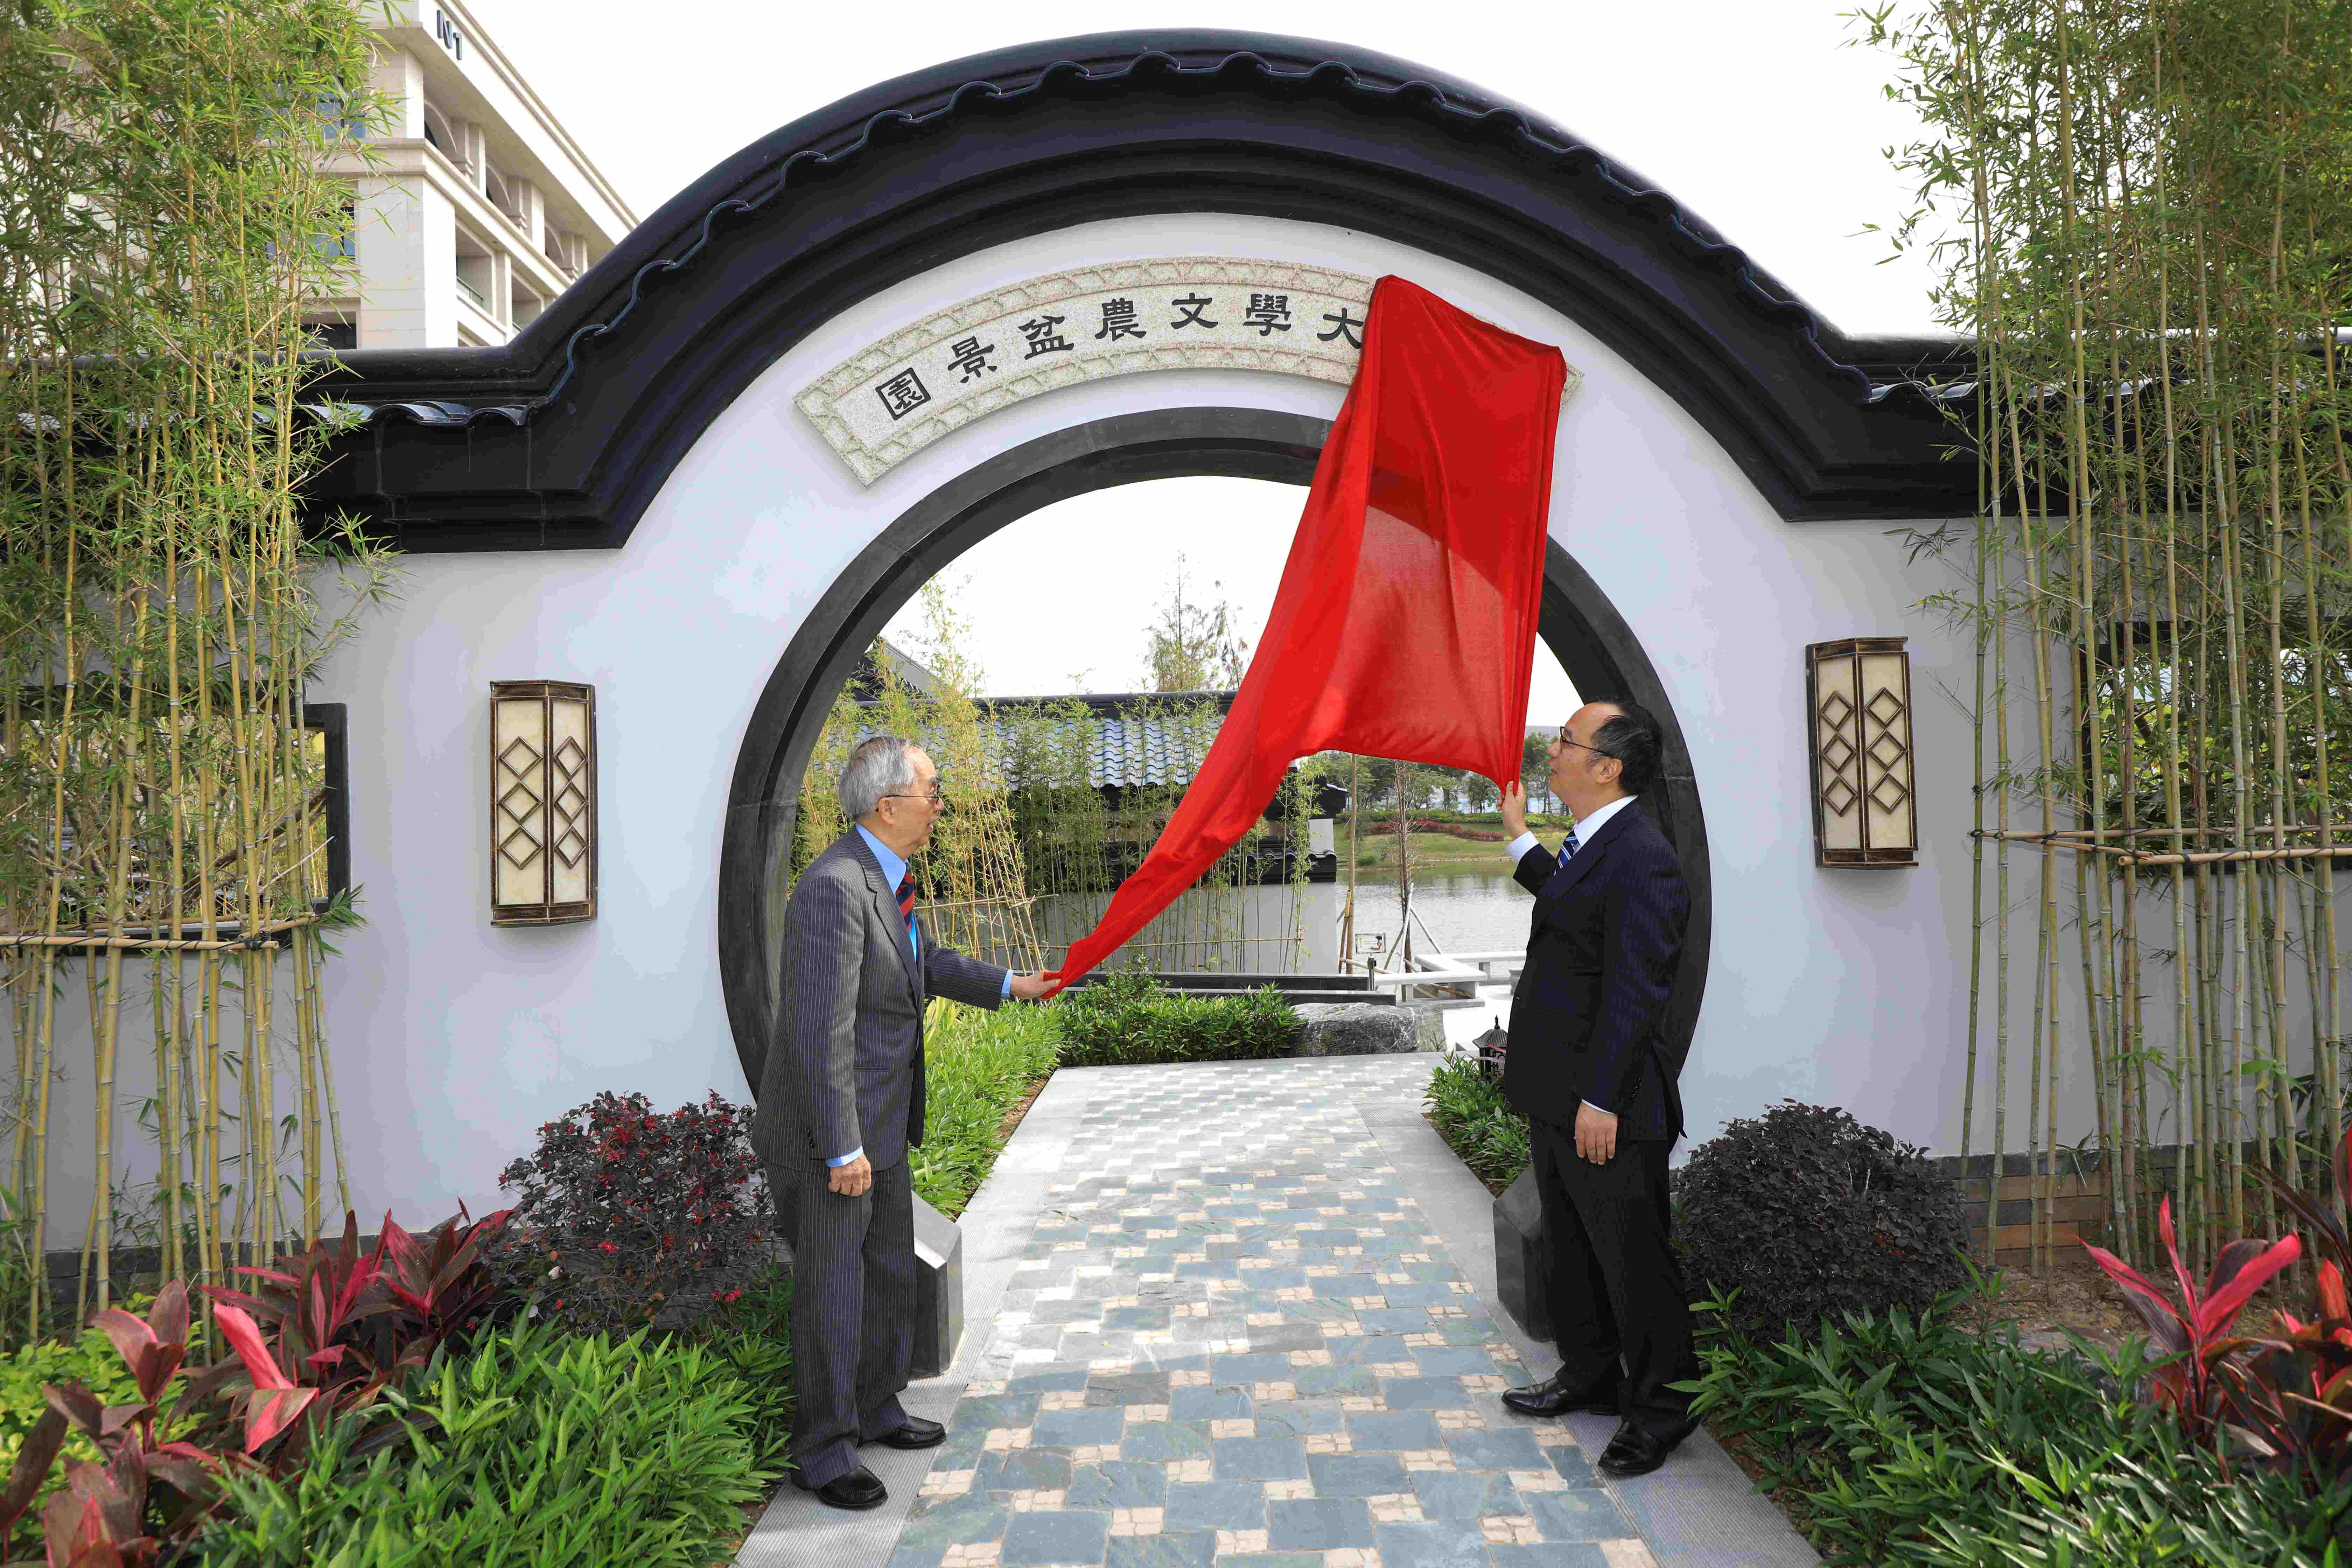 UM holds an opening ceremony for the Man Lung Garden